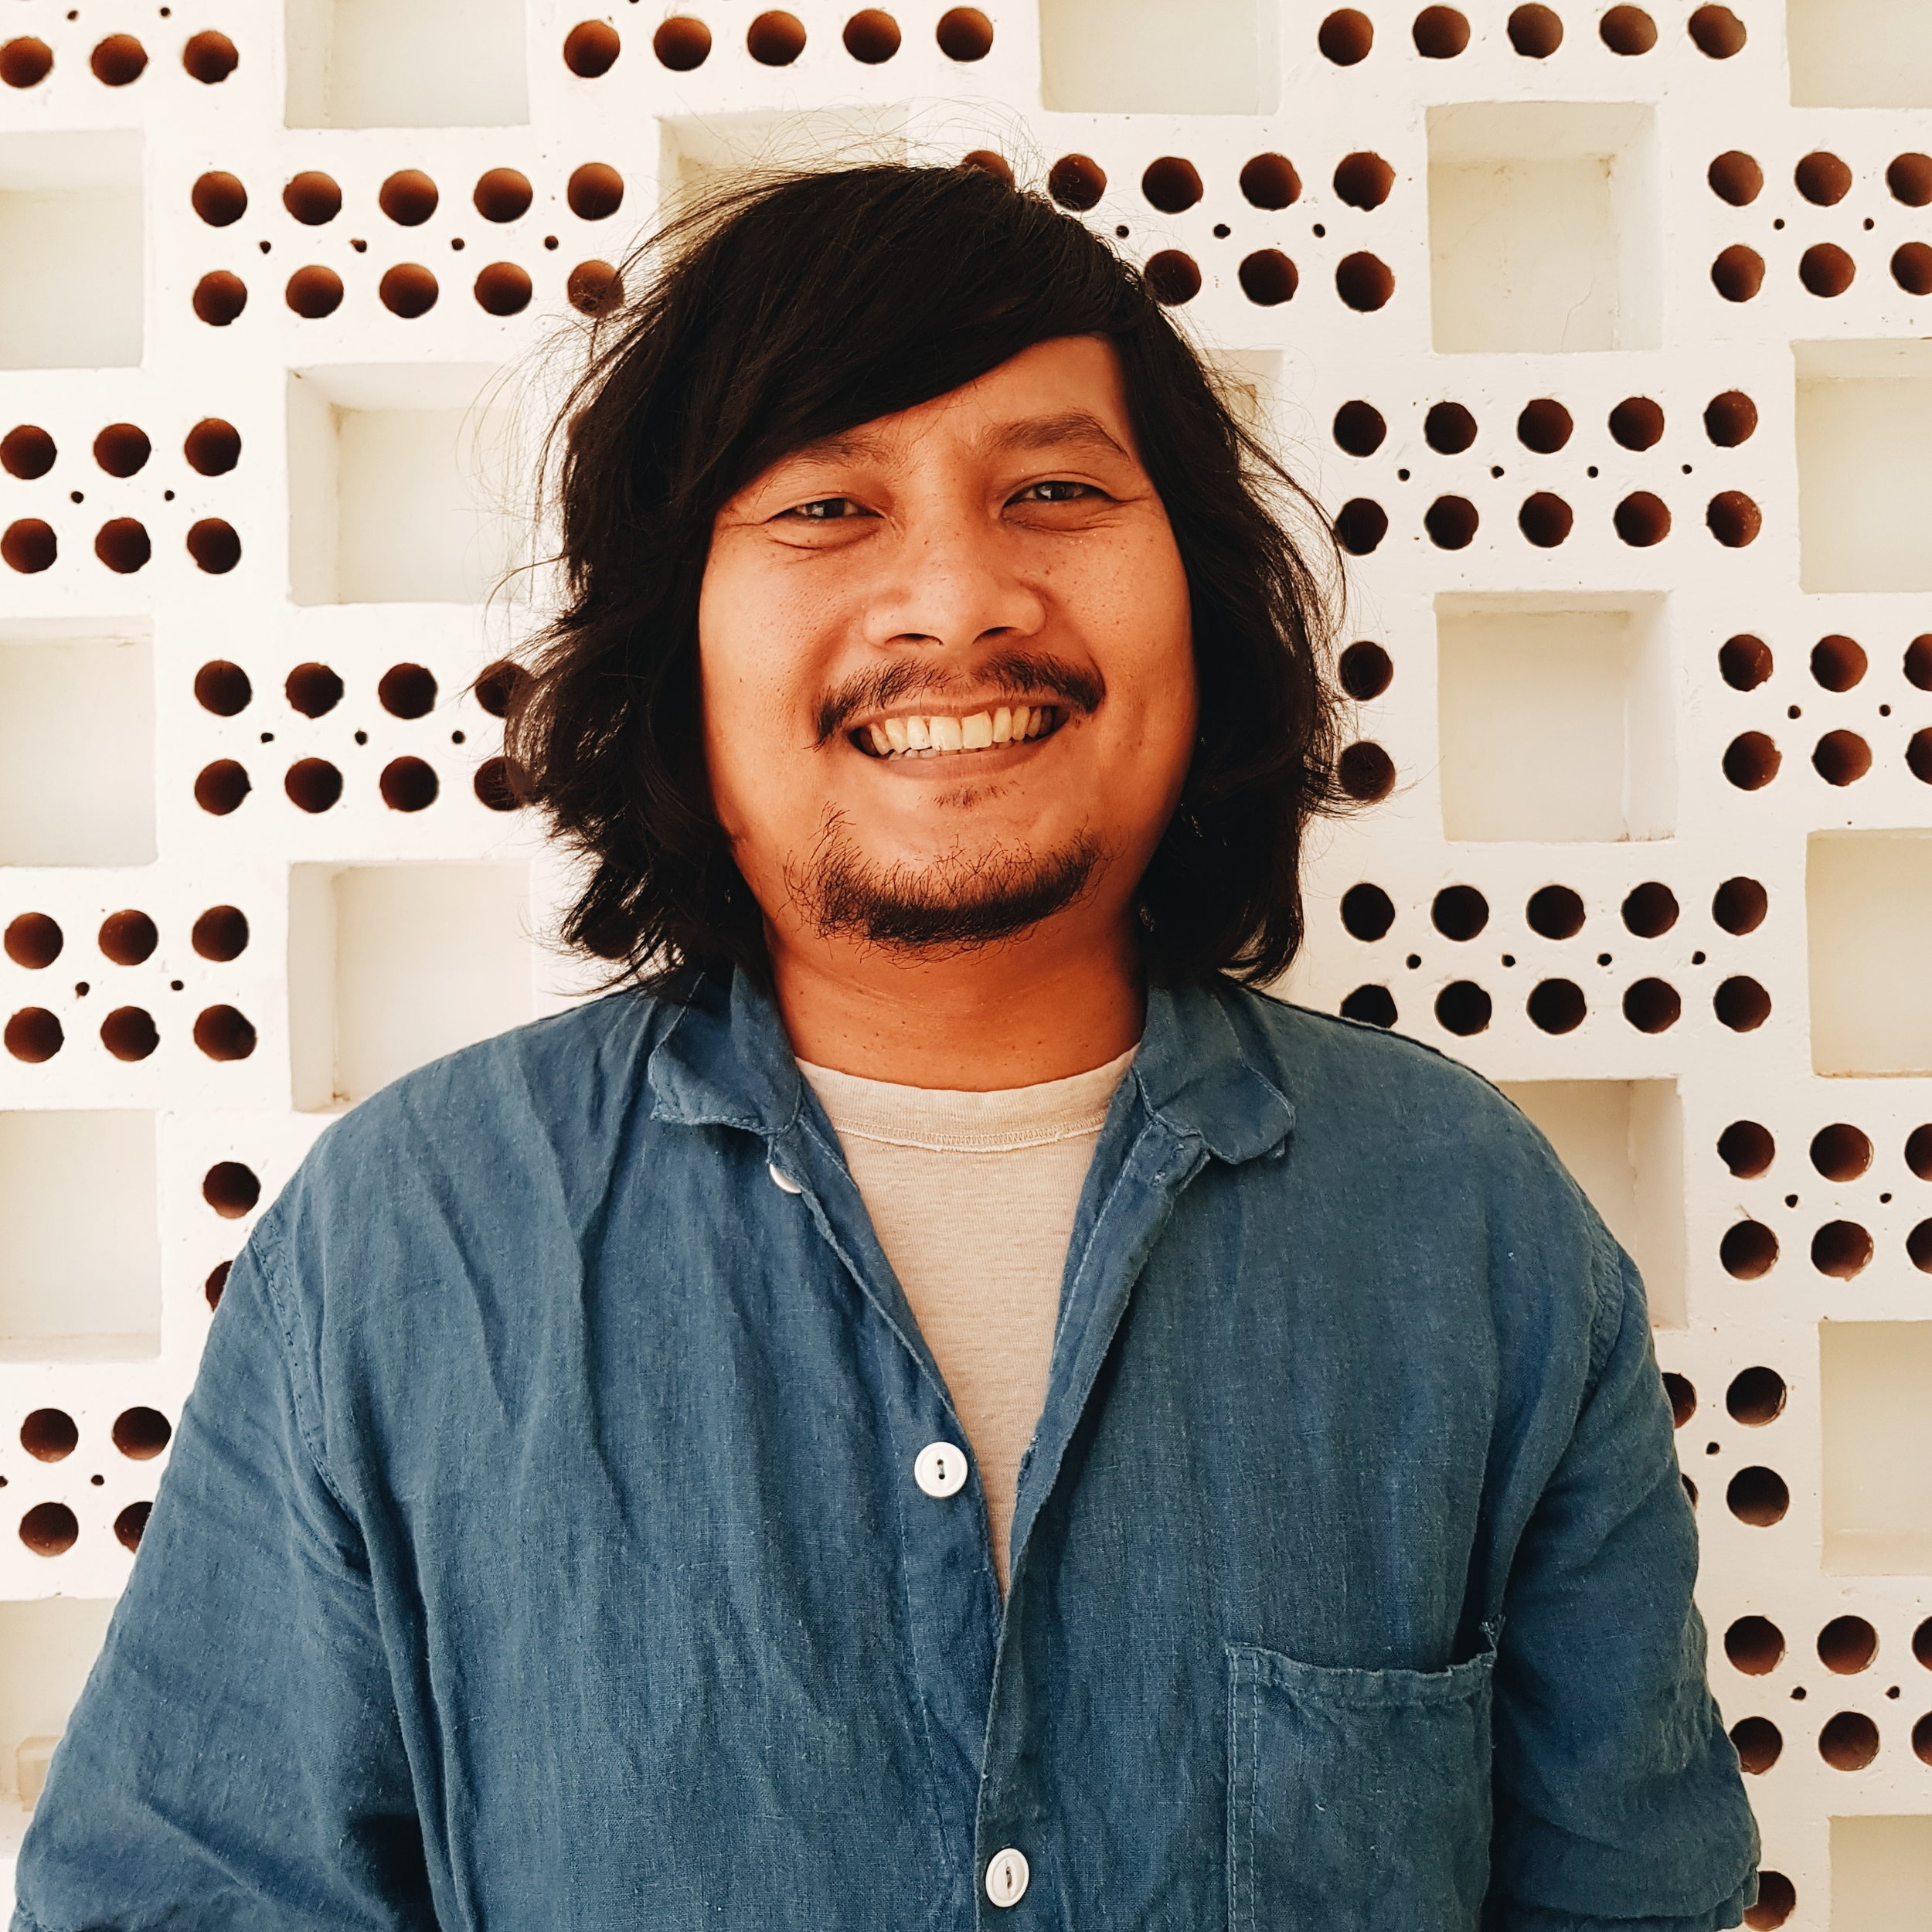 "Mikael Johani  is a poet, critic, and translator from Jakarta, Indonesia. His works have been published in  Asymptote, The Johannesburg Review of Books, Ajar (Hanoi), Vice Indonesia, Kerja Tangan (Kuala Lumpur), Murmur, Selatan, Popteori, Vita Traductiva (Montréal), What's Poetry?, Bung! , and others. His poetry book, ""We Are Nowhere And It's Wow"", was published by Post Press in 2017. He's working on ""mongrelz"", his second poetry collection, which will feature mostly codeswitching poems. He's also working on a translation of Gratiagusti Chananya Rompas's poetry collection, ""Non-Spesifik."" His English version of ""one by one the bodies died"", a poem from Non-Spesifik, won an Honourable Mention from the 2018 Hawker Prize for Southeast Asian Poetry. He is one of the winners of the 2018-19 Emerging Translator Mentorships Programme from the UK's National Centre for Writing. He organizes Paviliun Puisi, a monthly open mic gig in Jakarta."